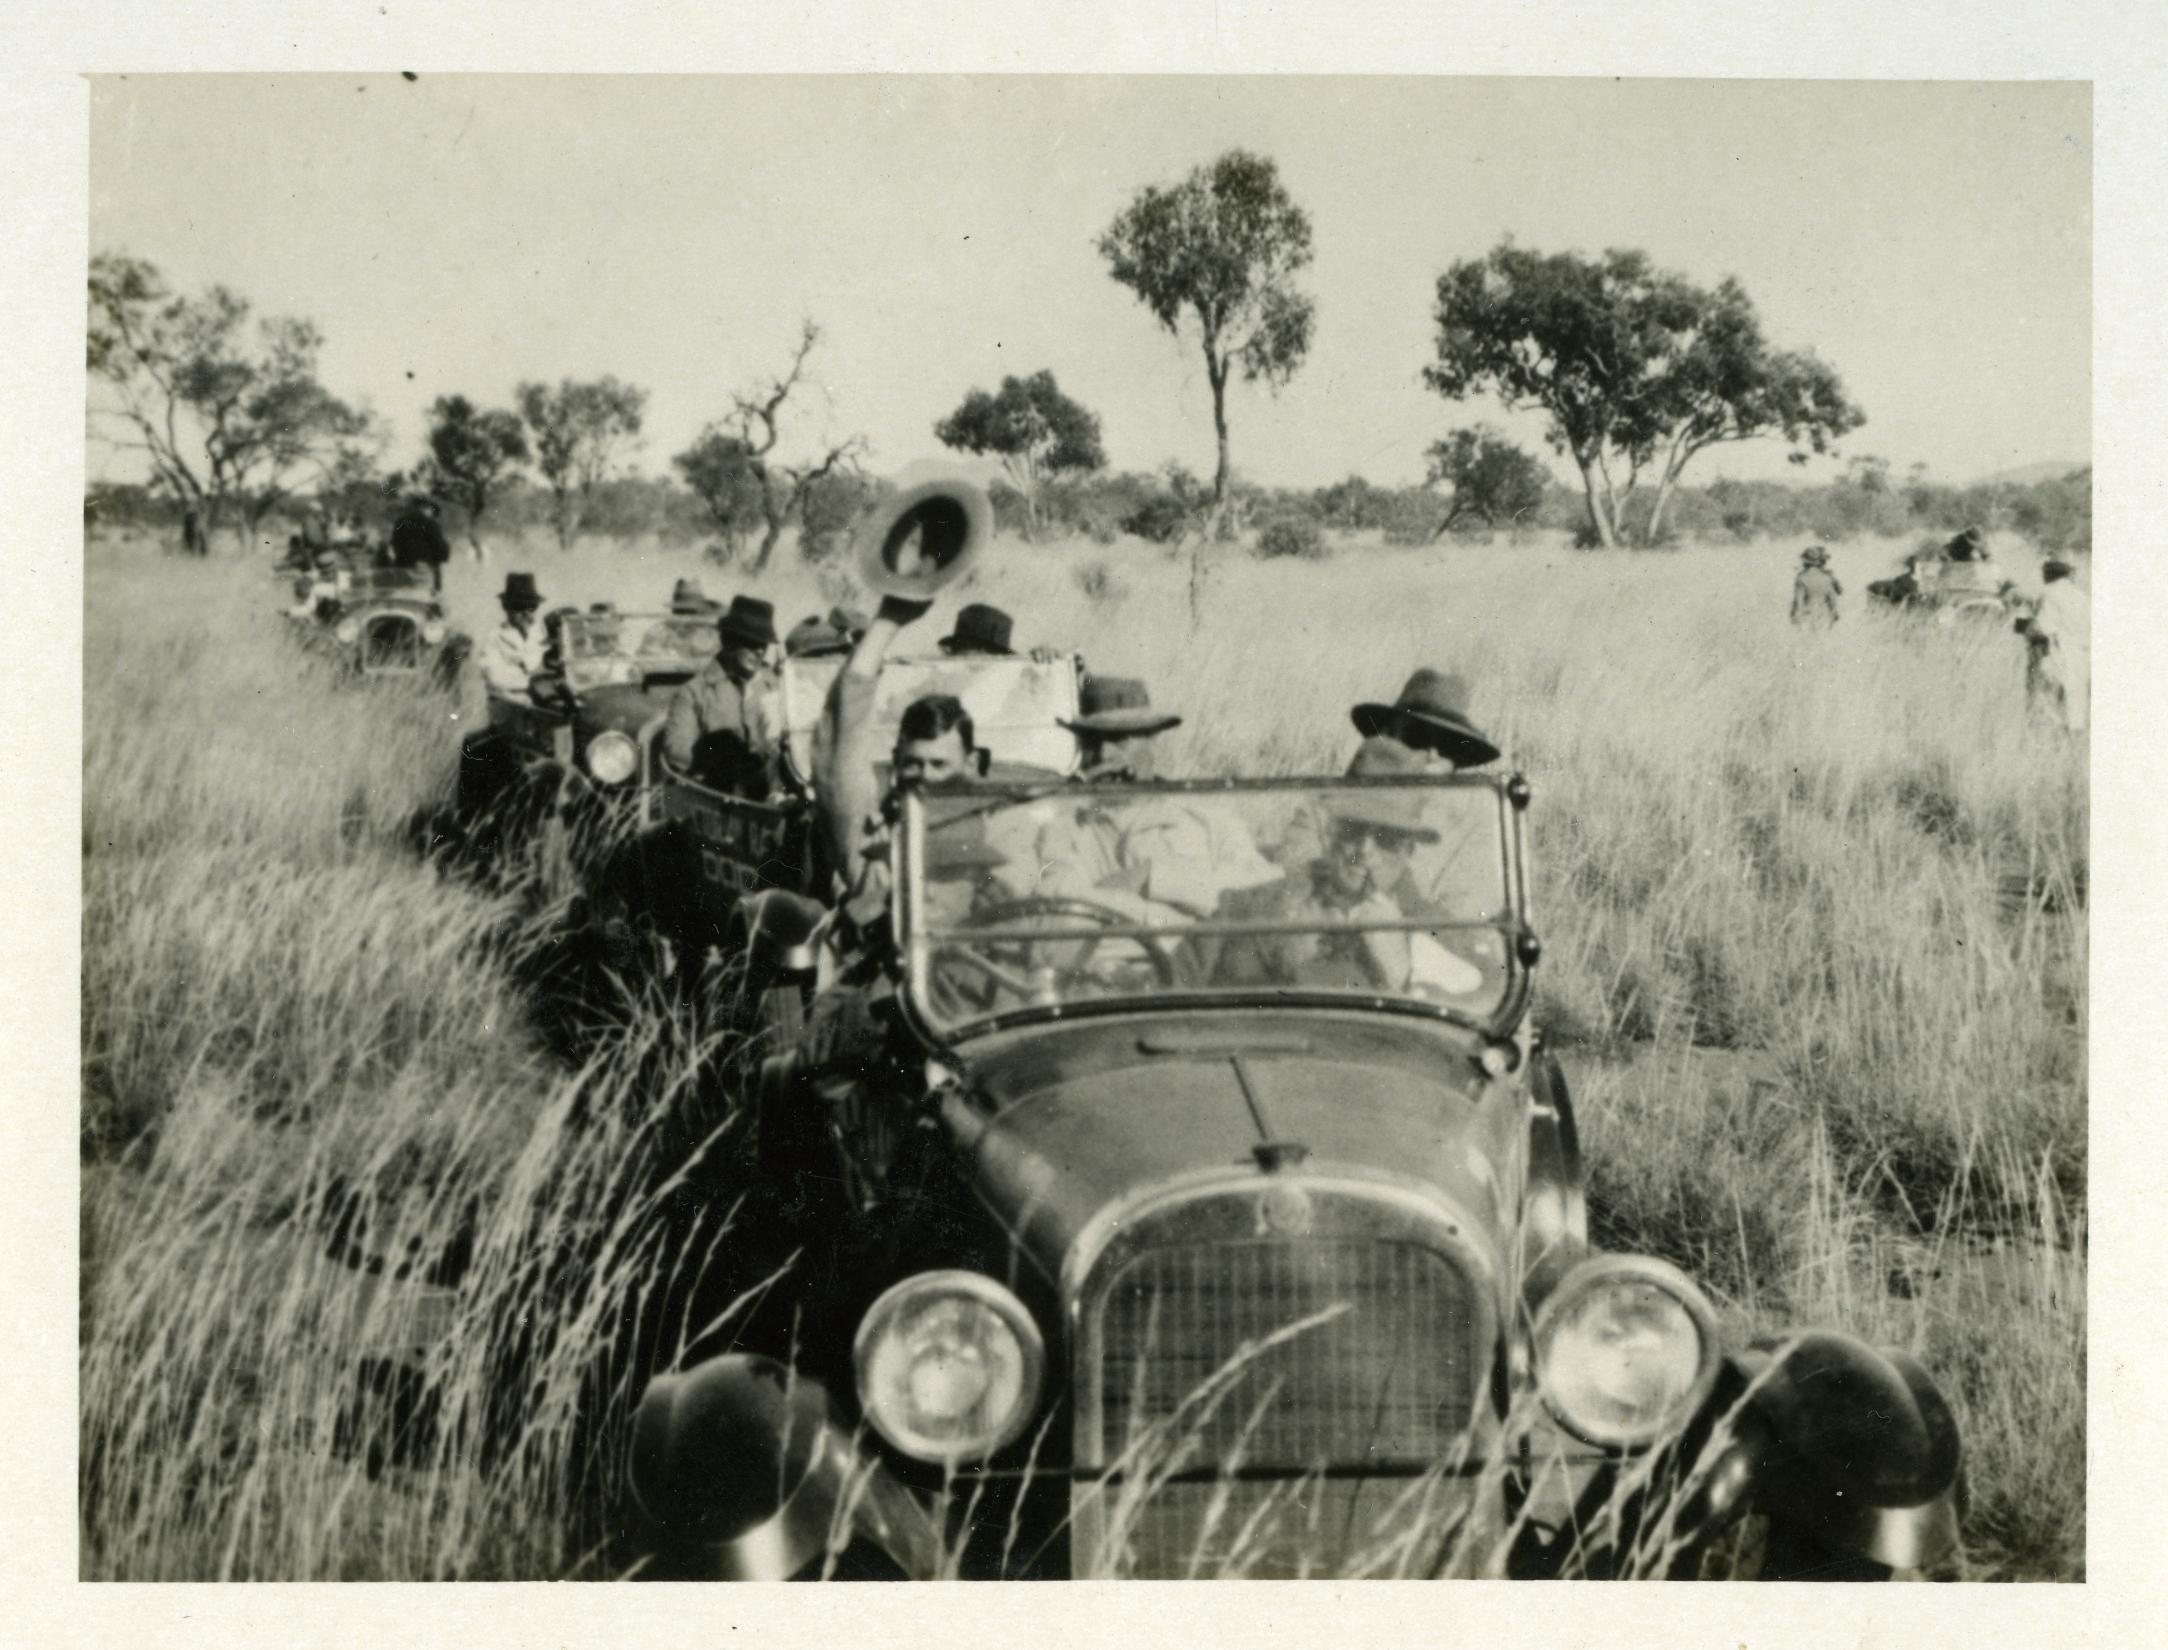 Motorcade of old cars traveling through tall grass in outback Northern Territory